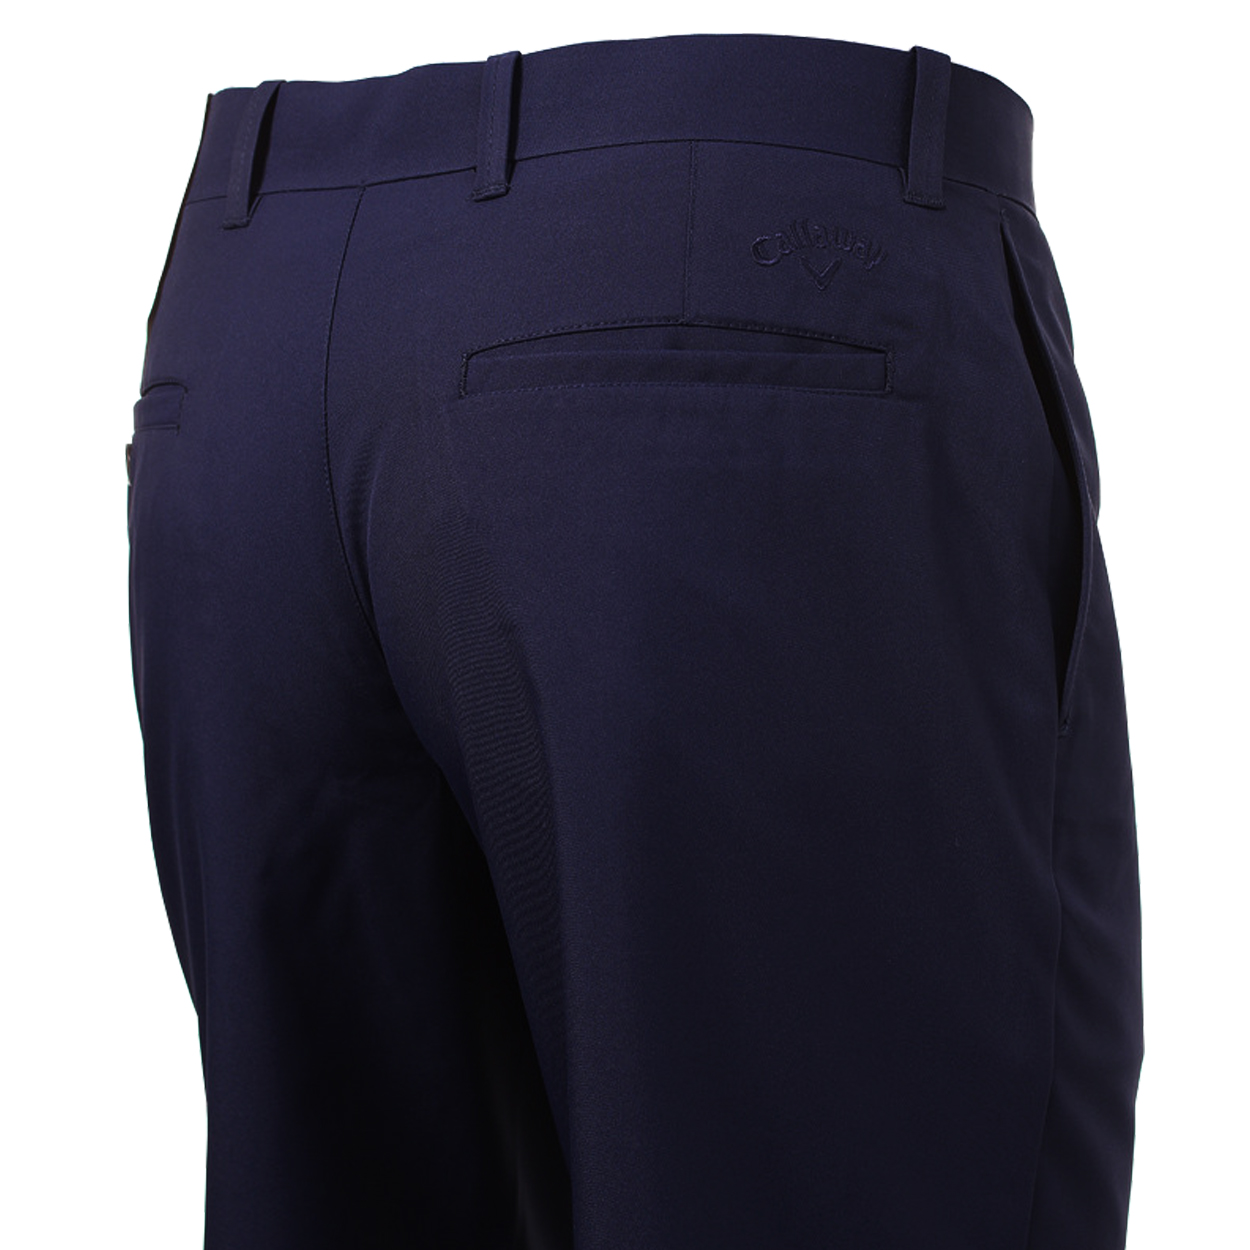 Callaway-Golf-Men-039-s-Stretch-Waist-Flat-Front-Solid-Shorts-NEW thumbnail 4